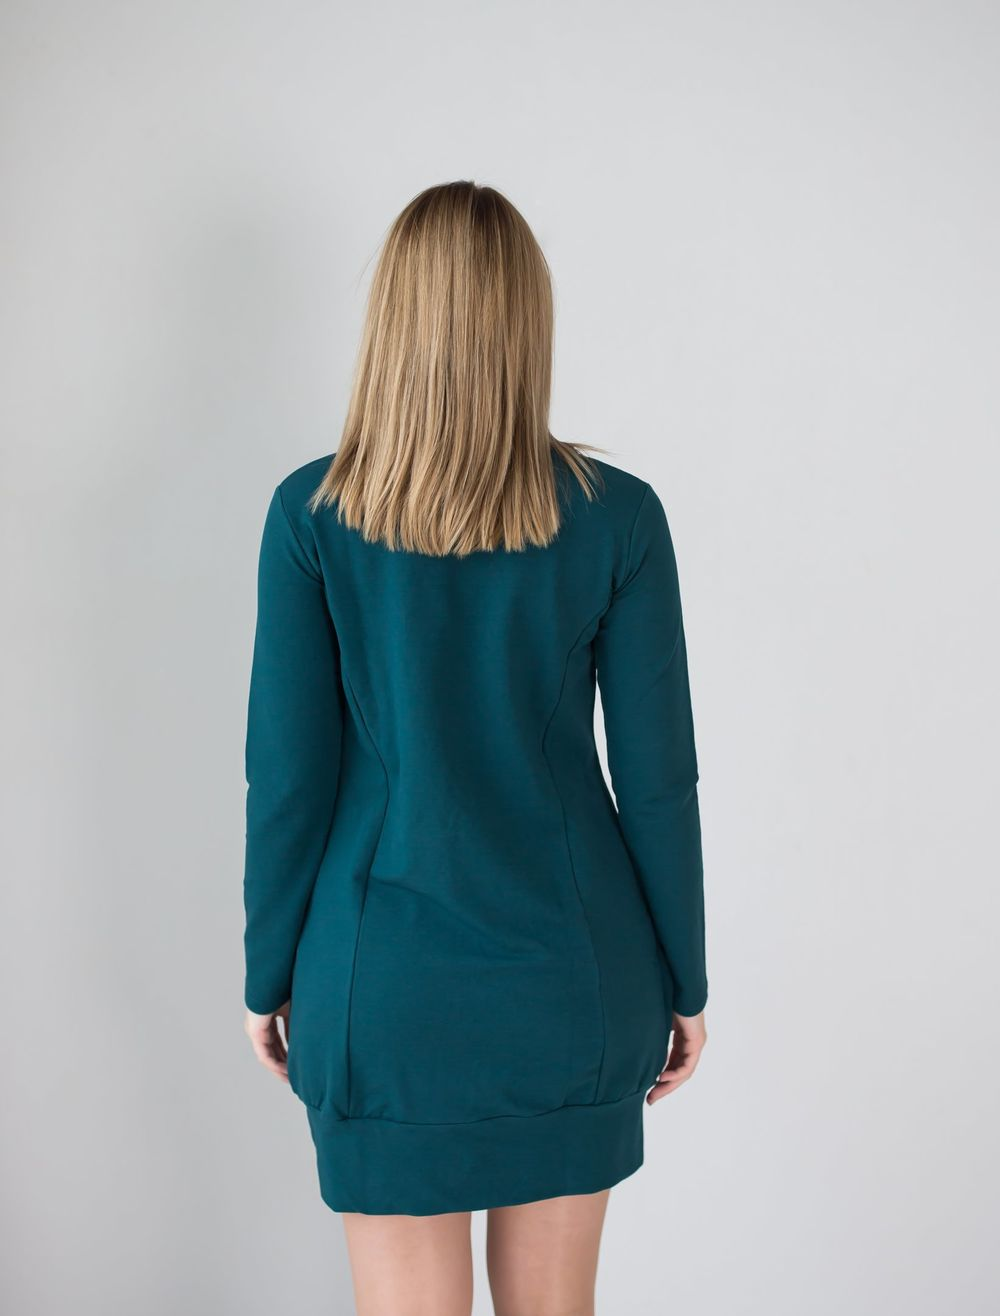 MAINE Collegetunika, Deep Teal